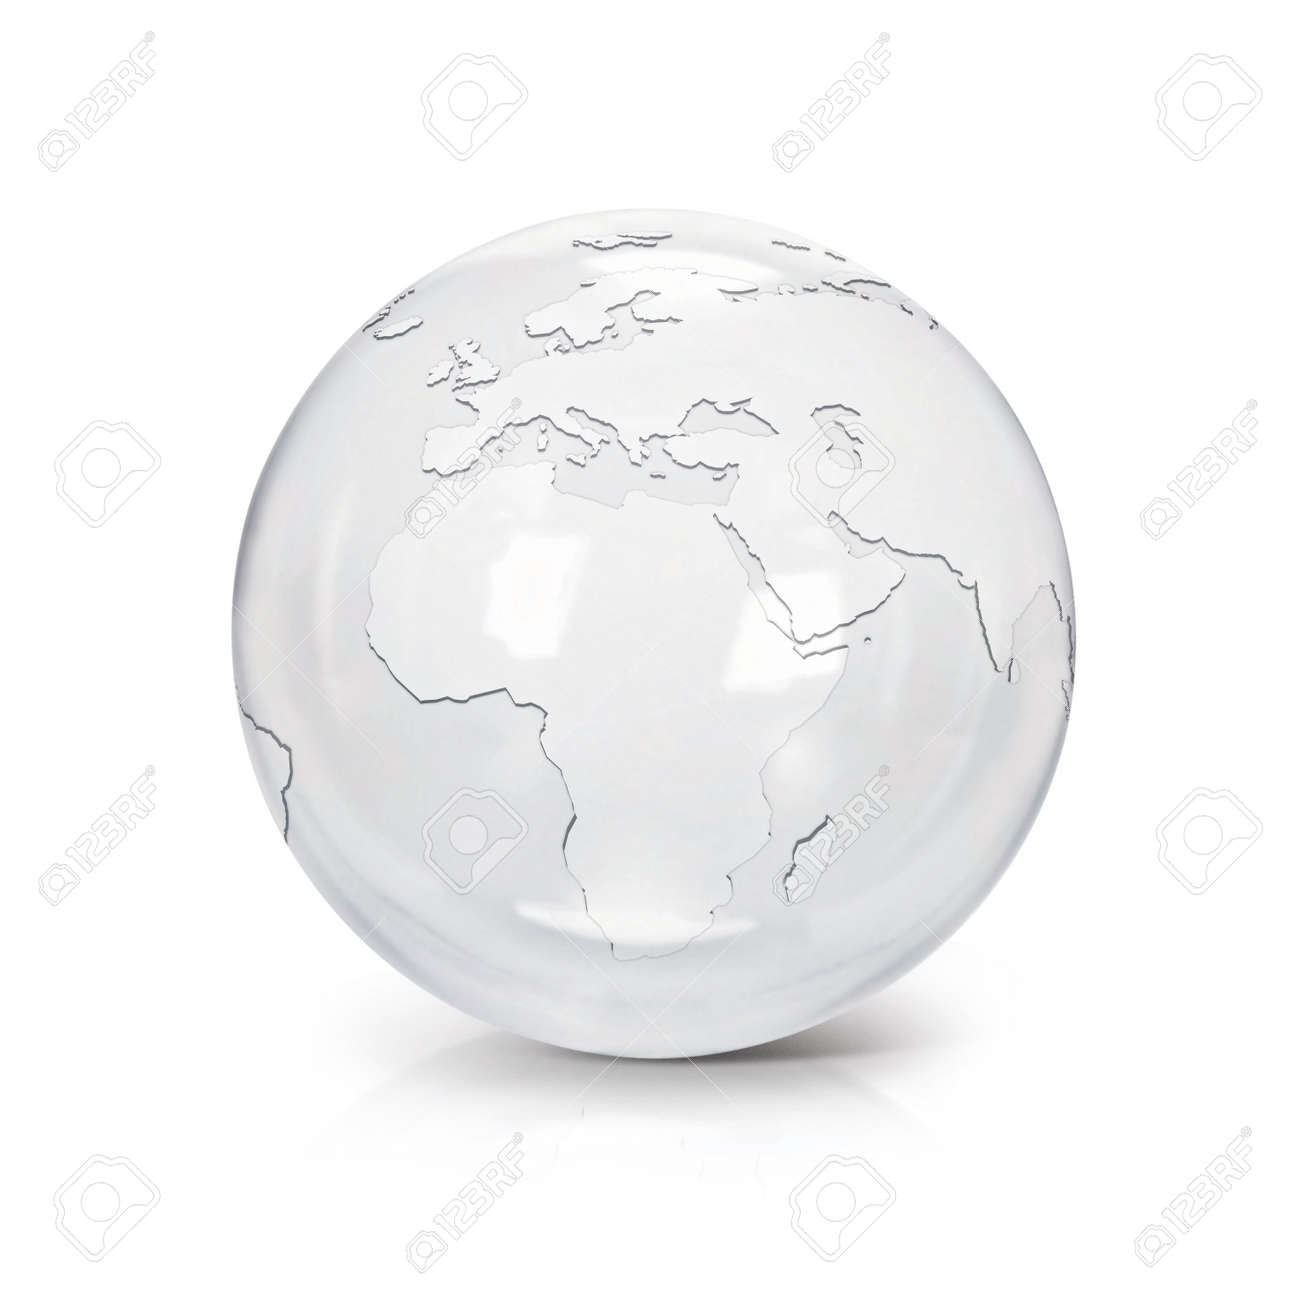 Clear Glass Globe 3d Illustration Europe And Africa Map On White